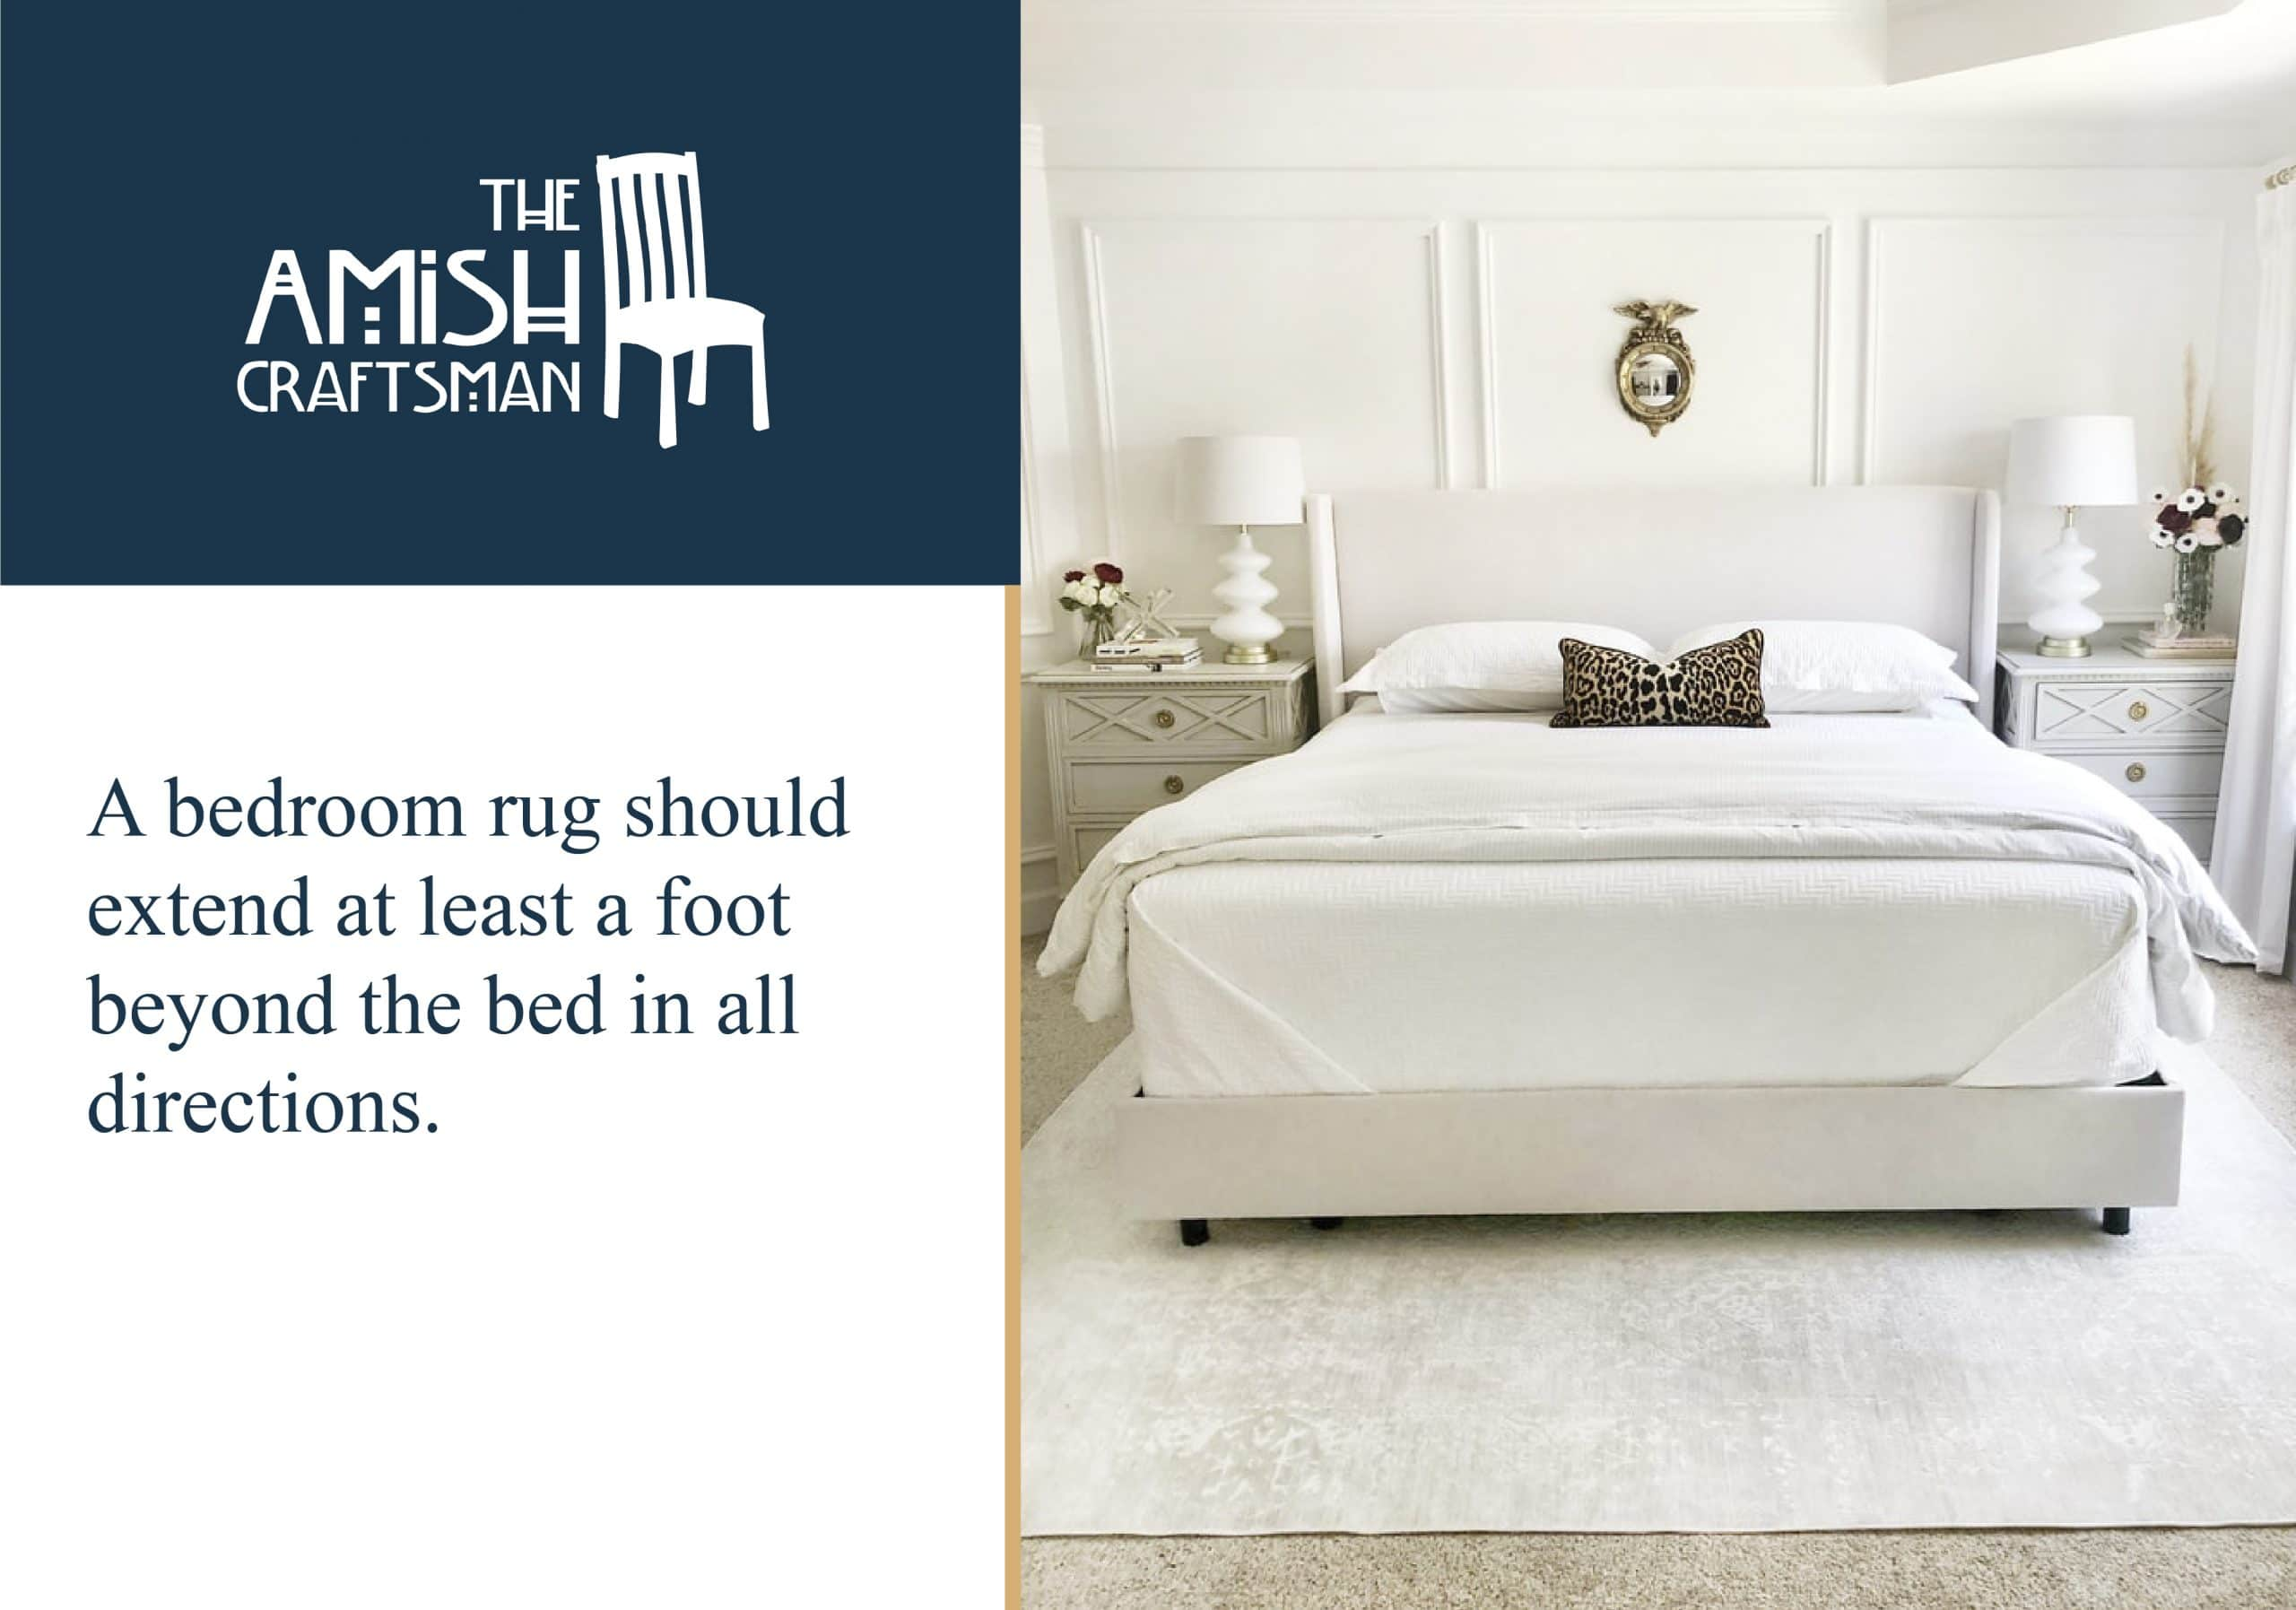 A bedroom rug should extend at least a foot beyond the bed in all directions